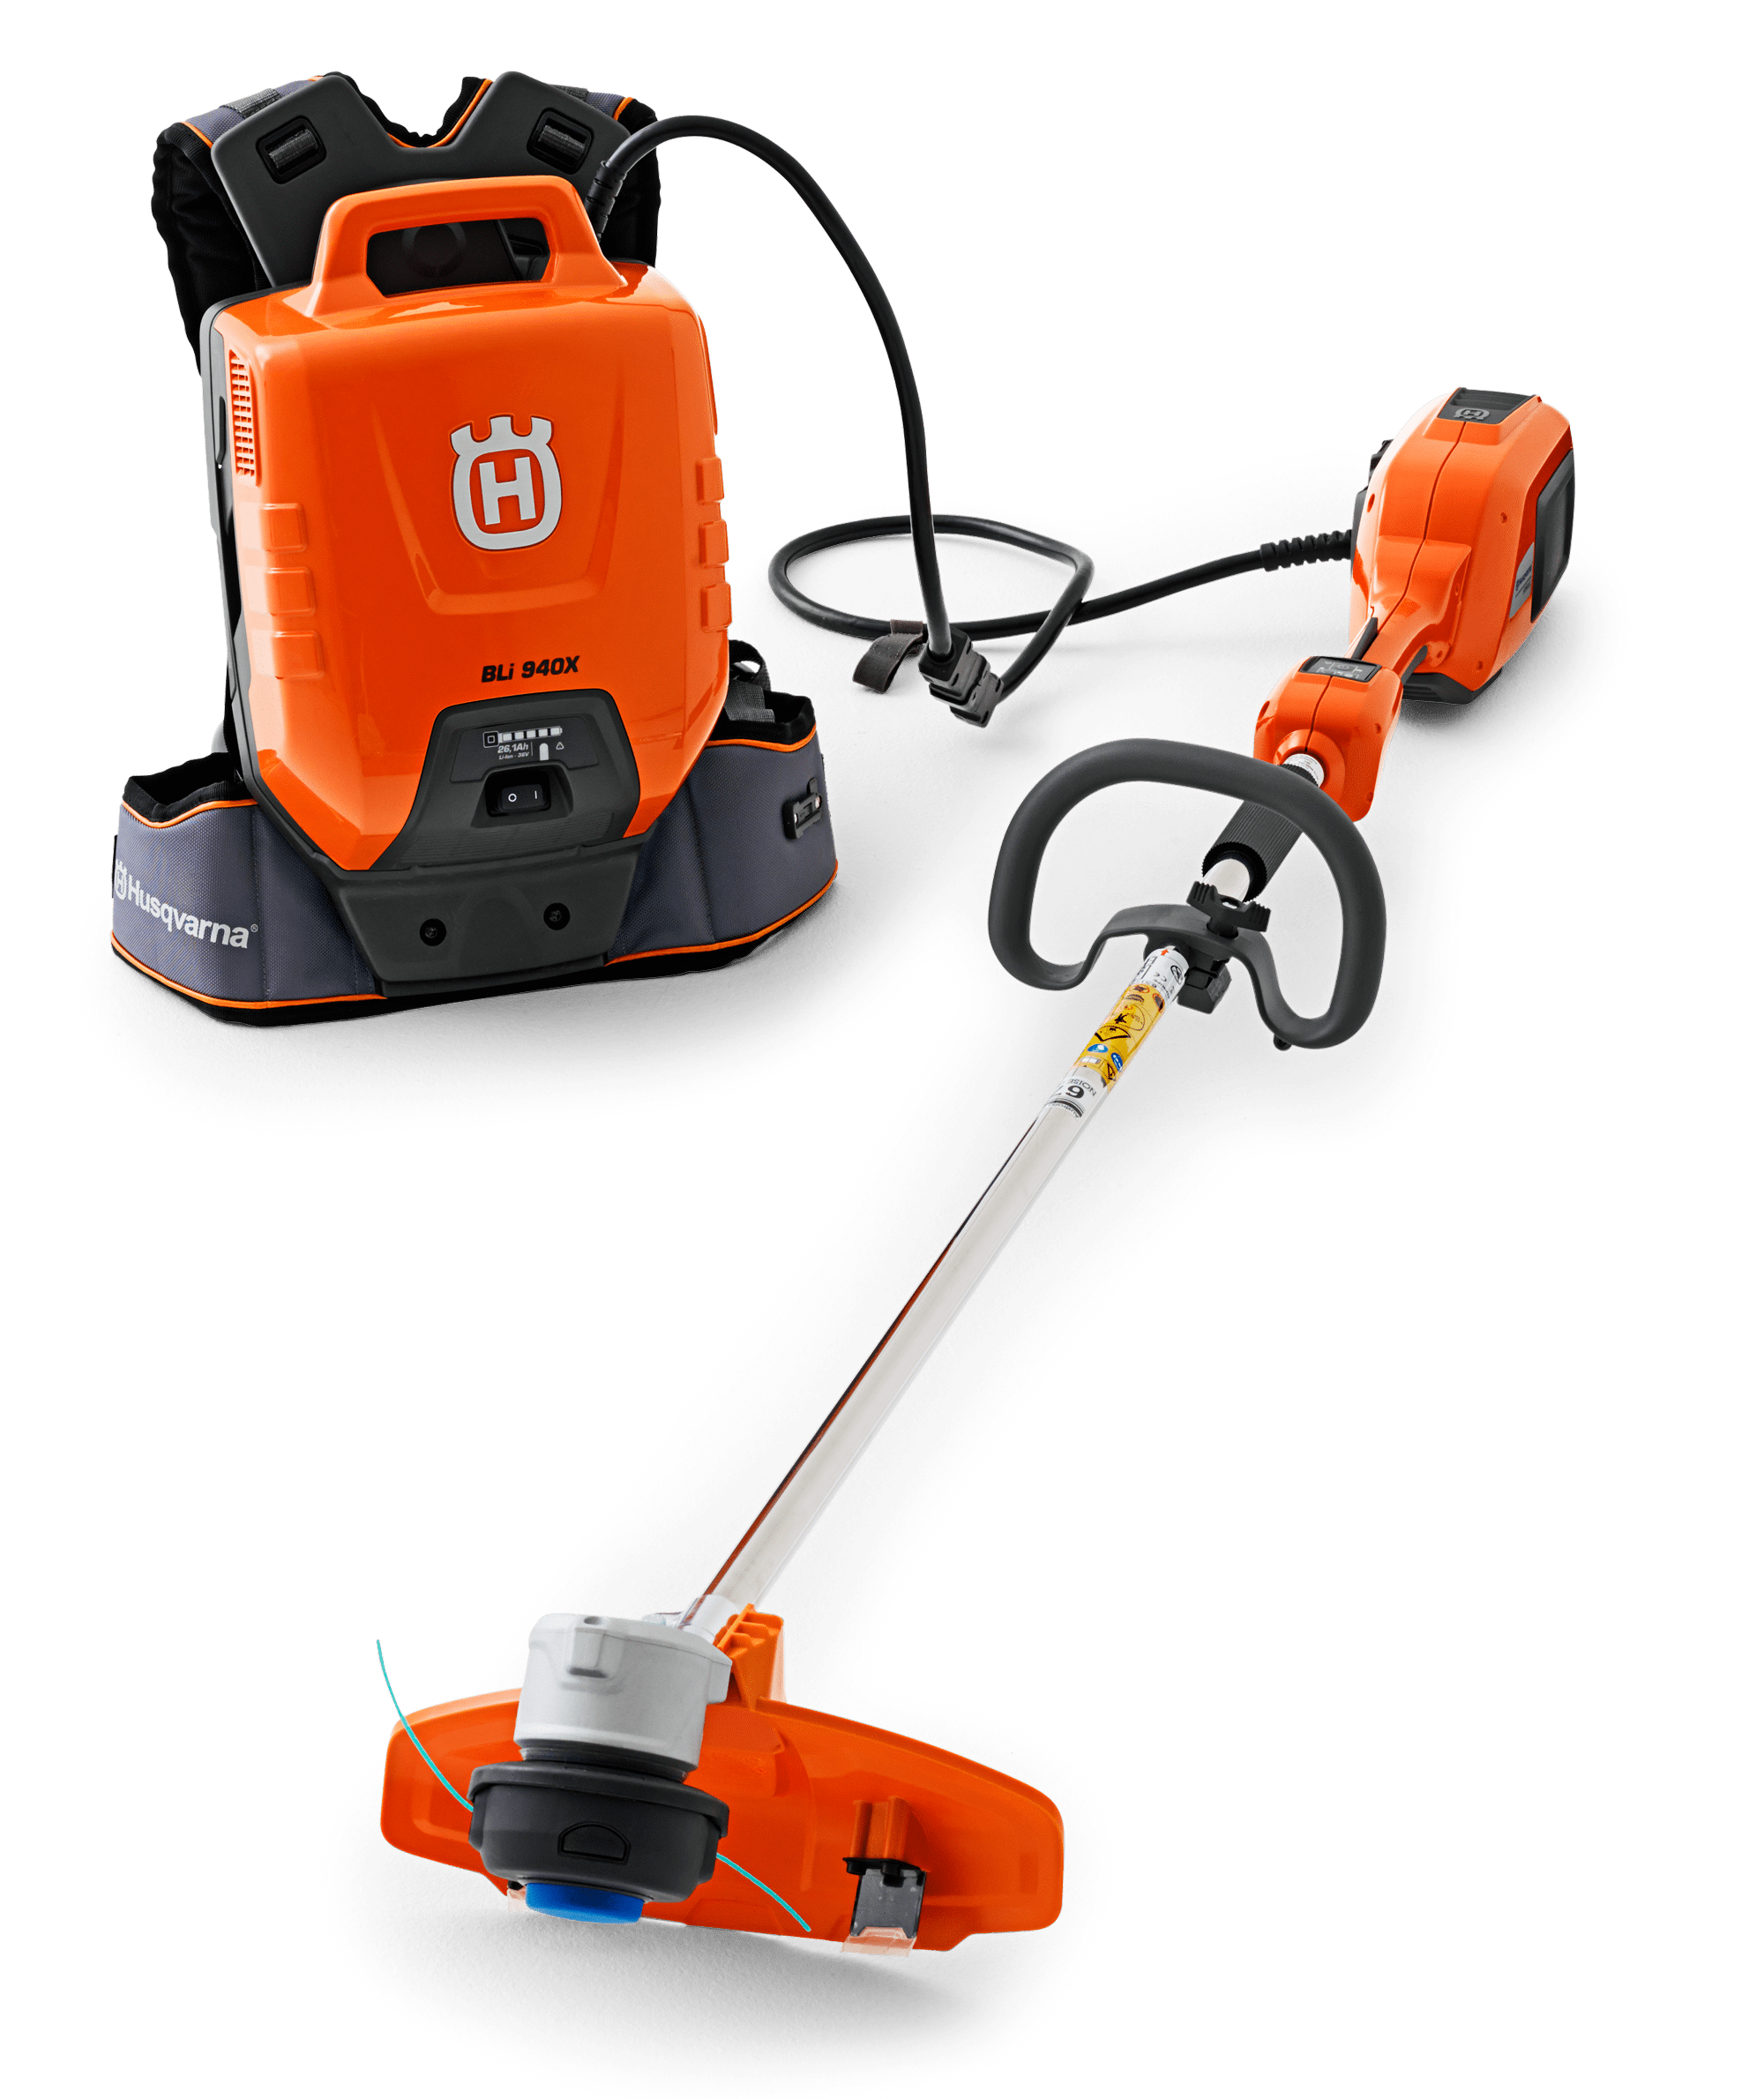 536LiL Grass Trimmer, Battery, incl. BLi940X